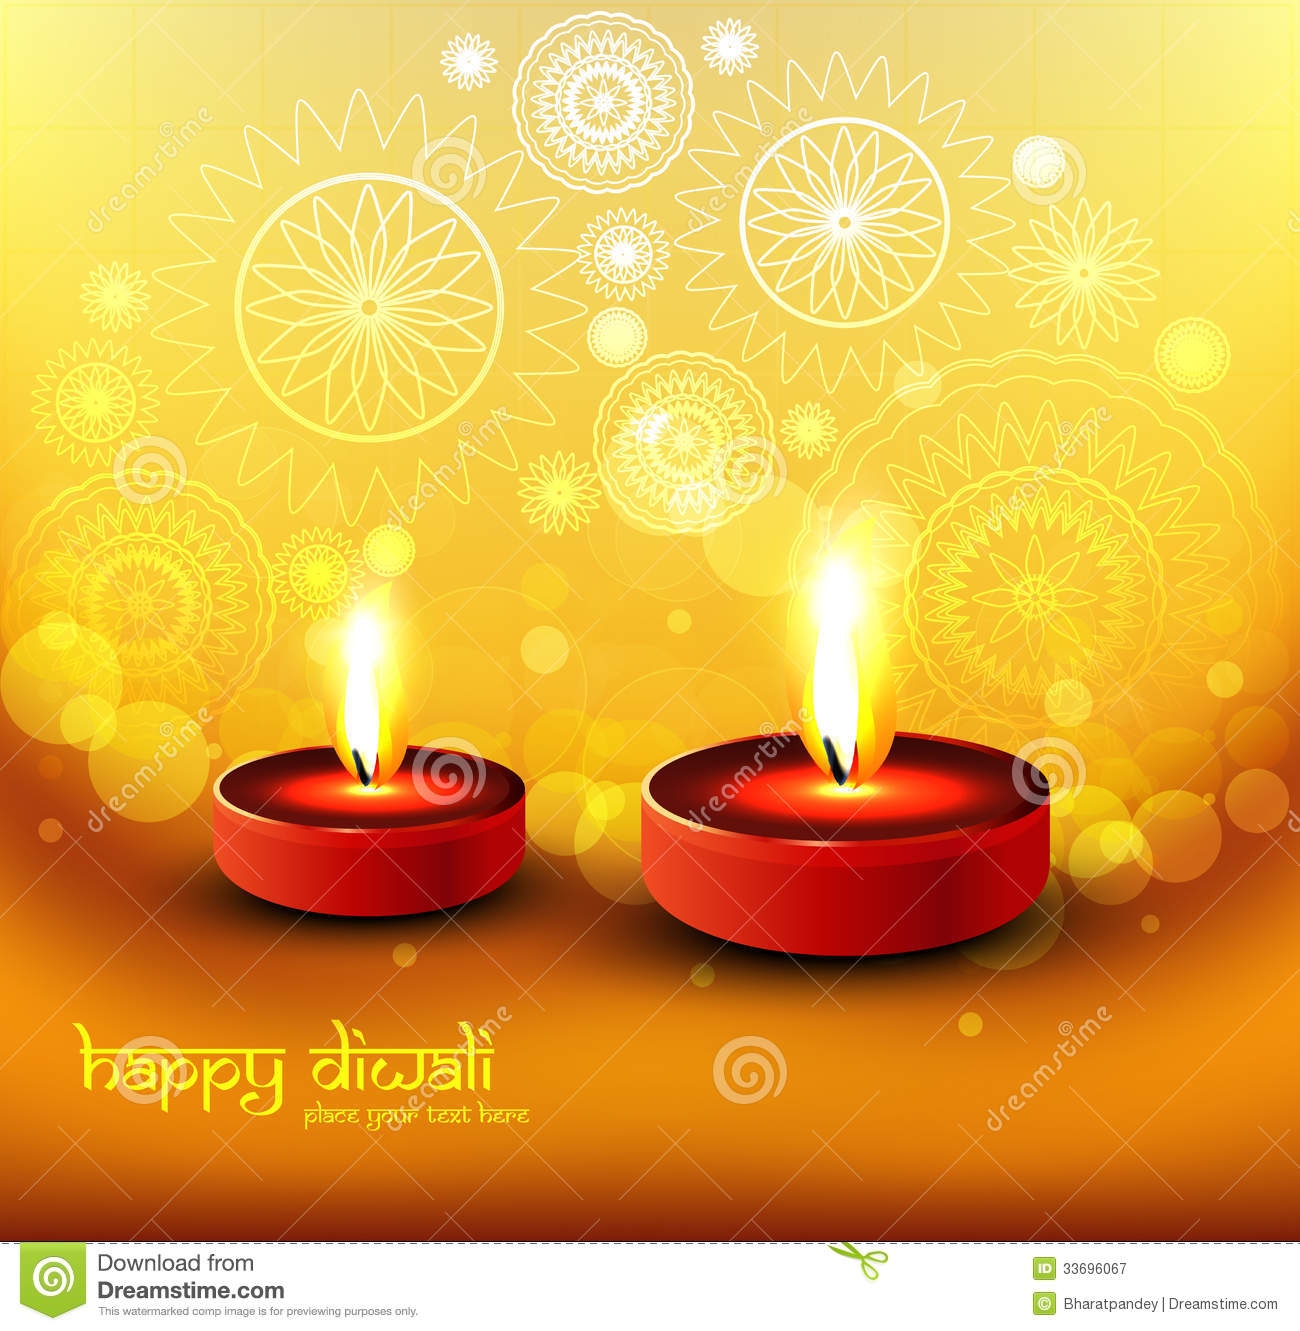 hinduism and spiritual significance diwali These are few spiritual significance of lizard falling on the body parts in hinduism, if lizards enter the house, few cultures believe that it is an avatar of goddess lakshmi for quick alerts.